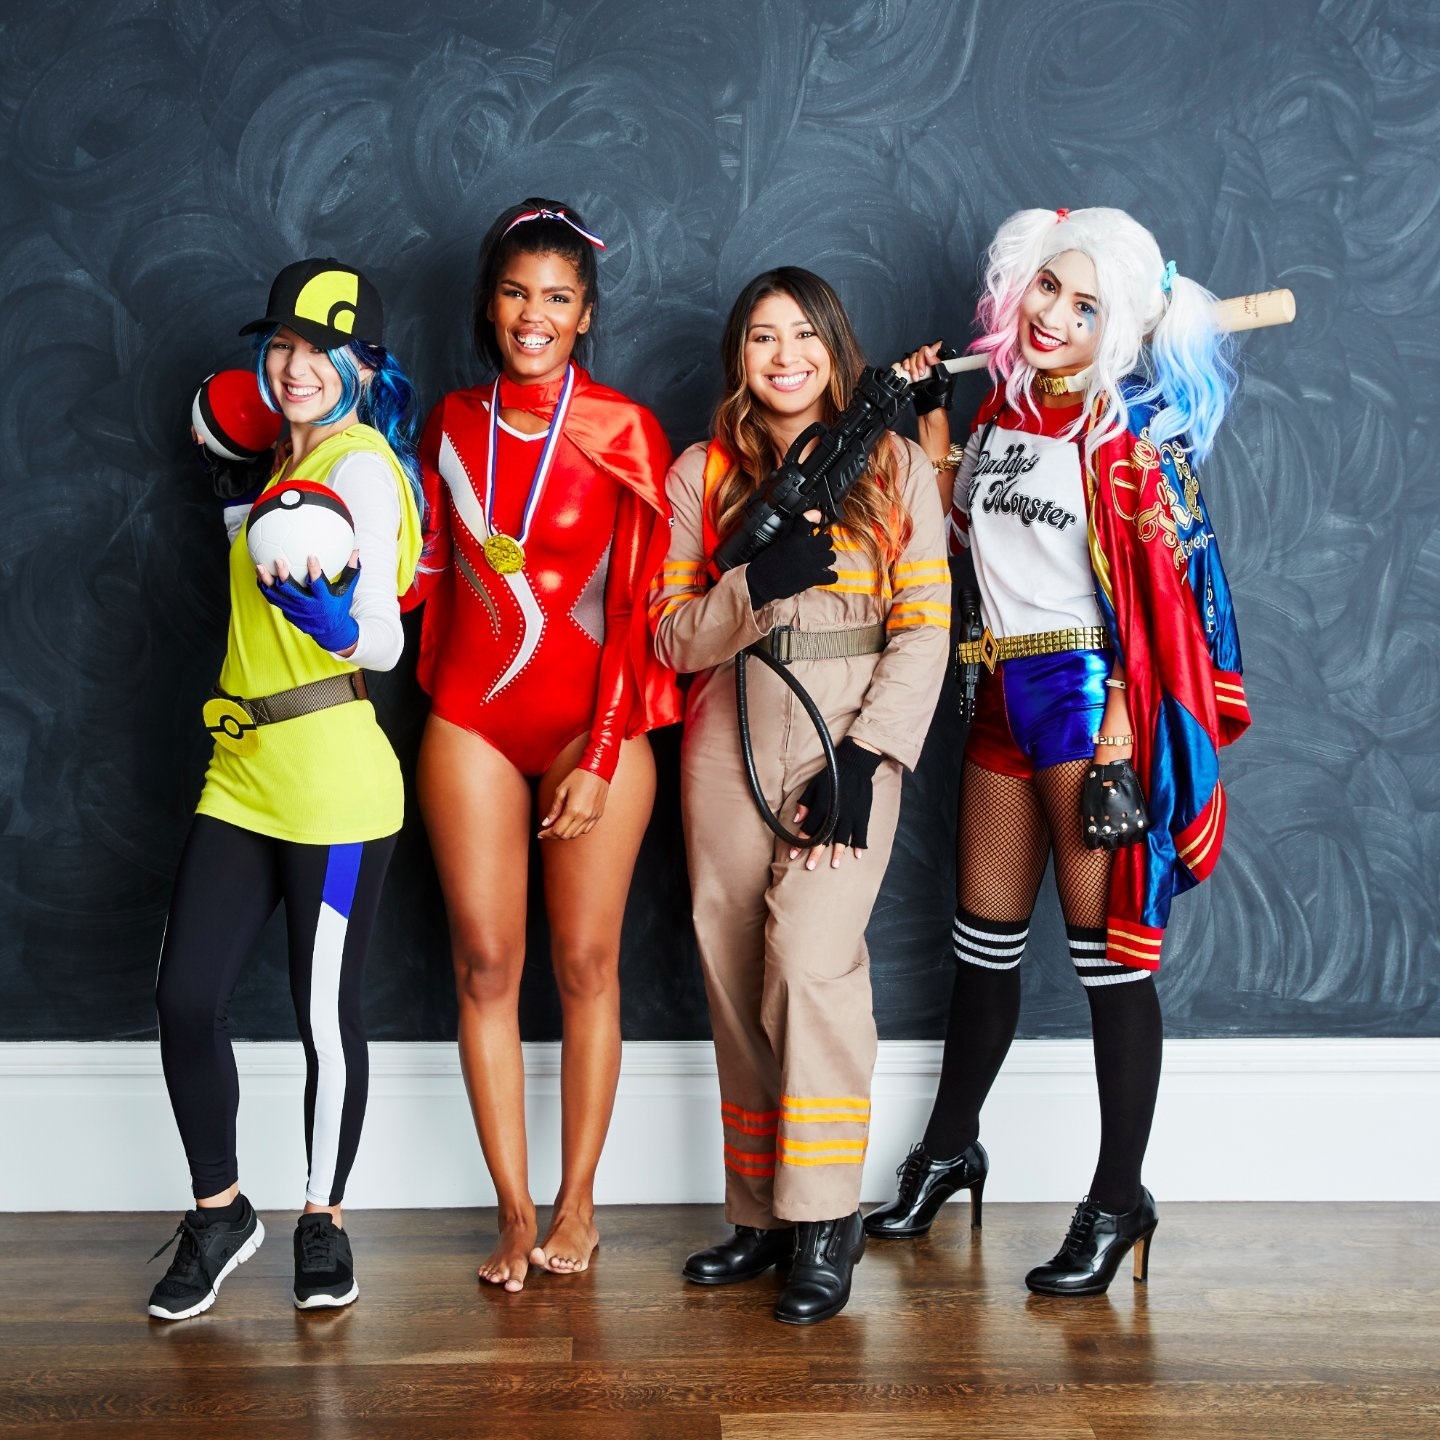 10 Gorgeous Halloween Costume Ideas For 4 People most popular halloween costumes of 2016 popsugar celebrity 2 2020